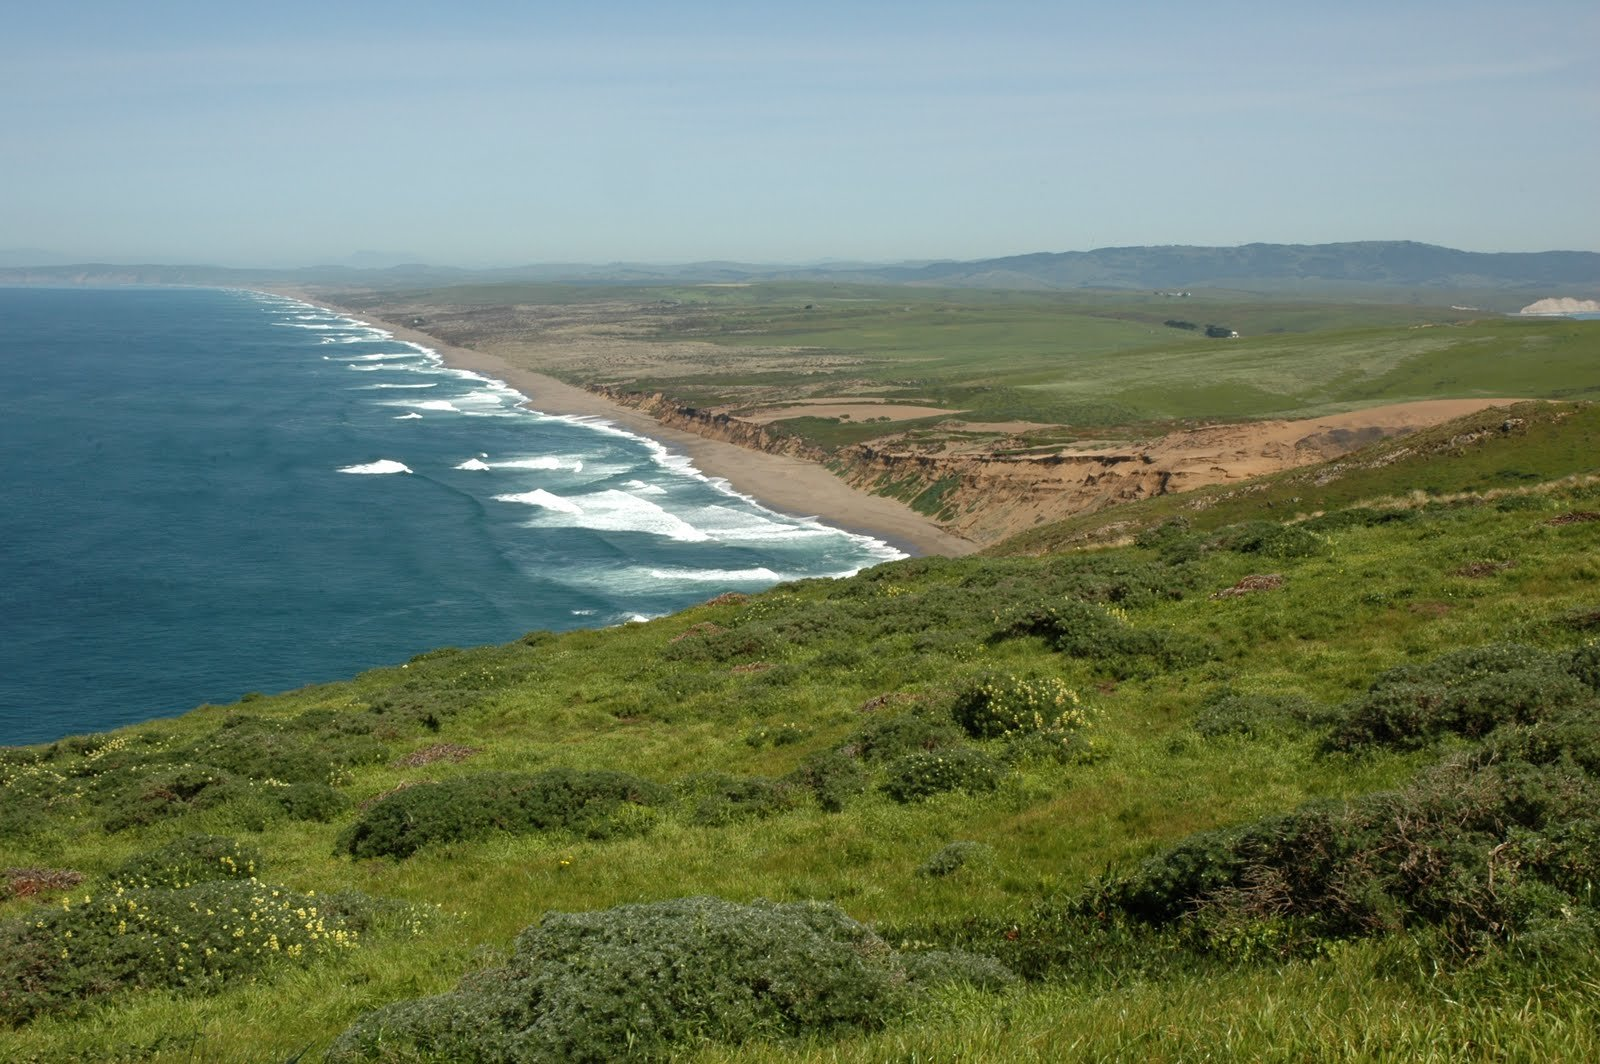 A view of the national seashore and peninsula